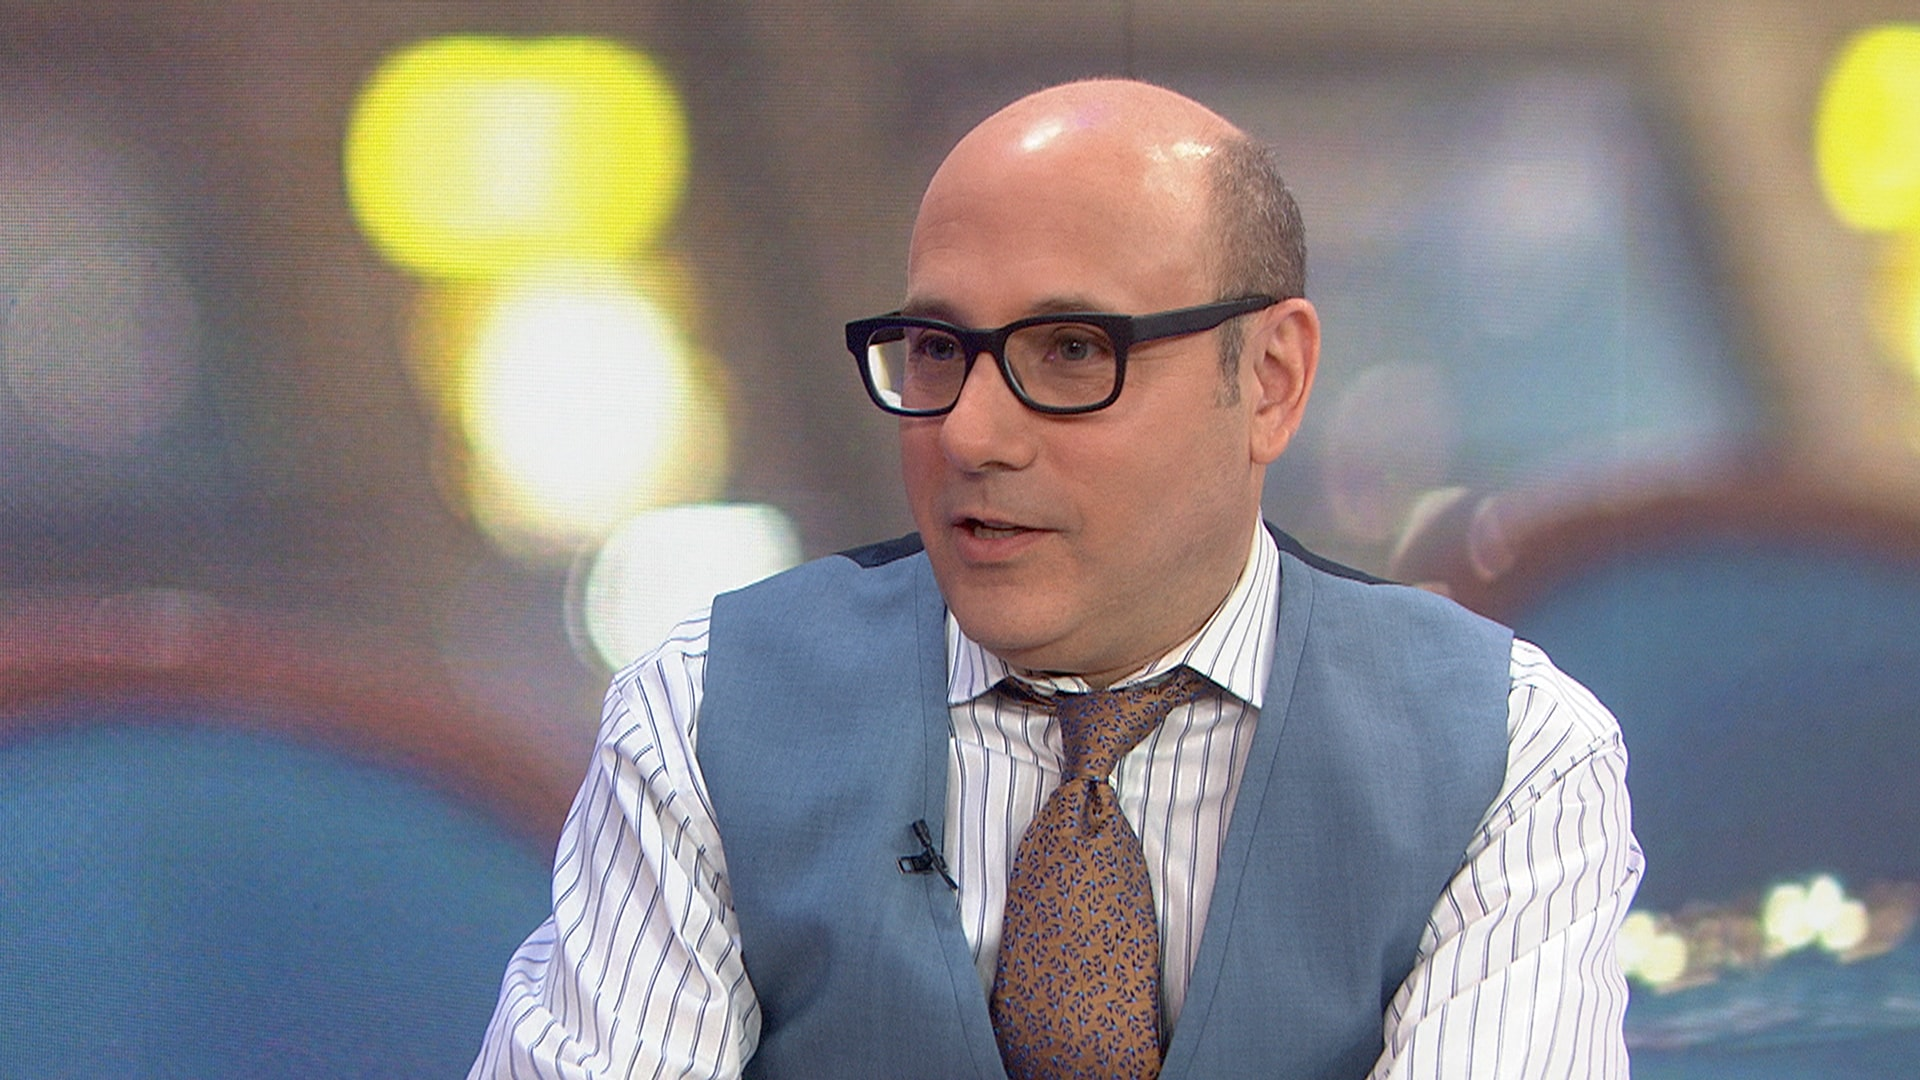 Willie Garson Pictures